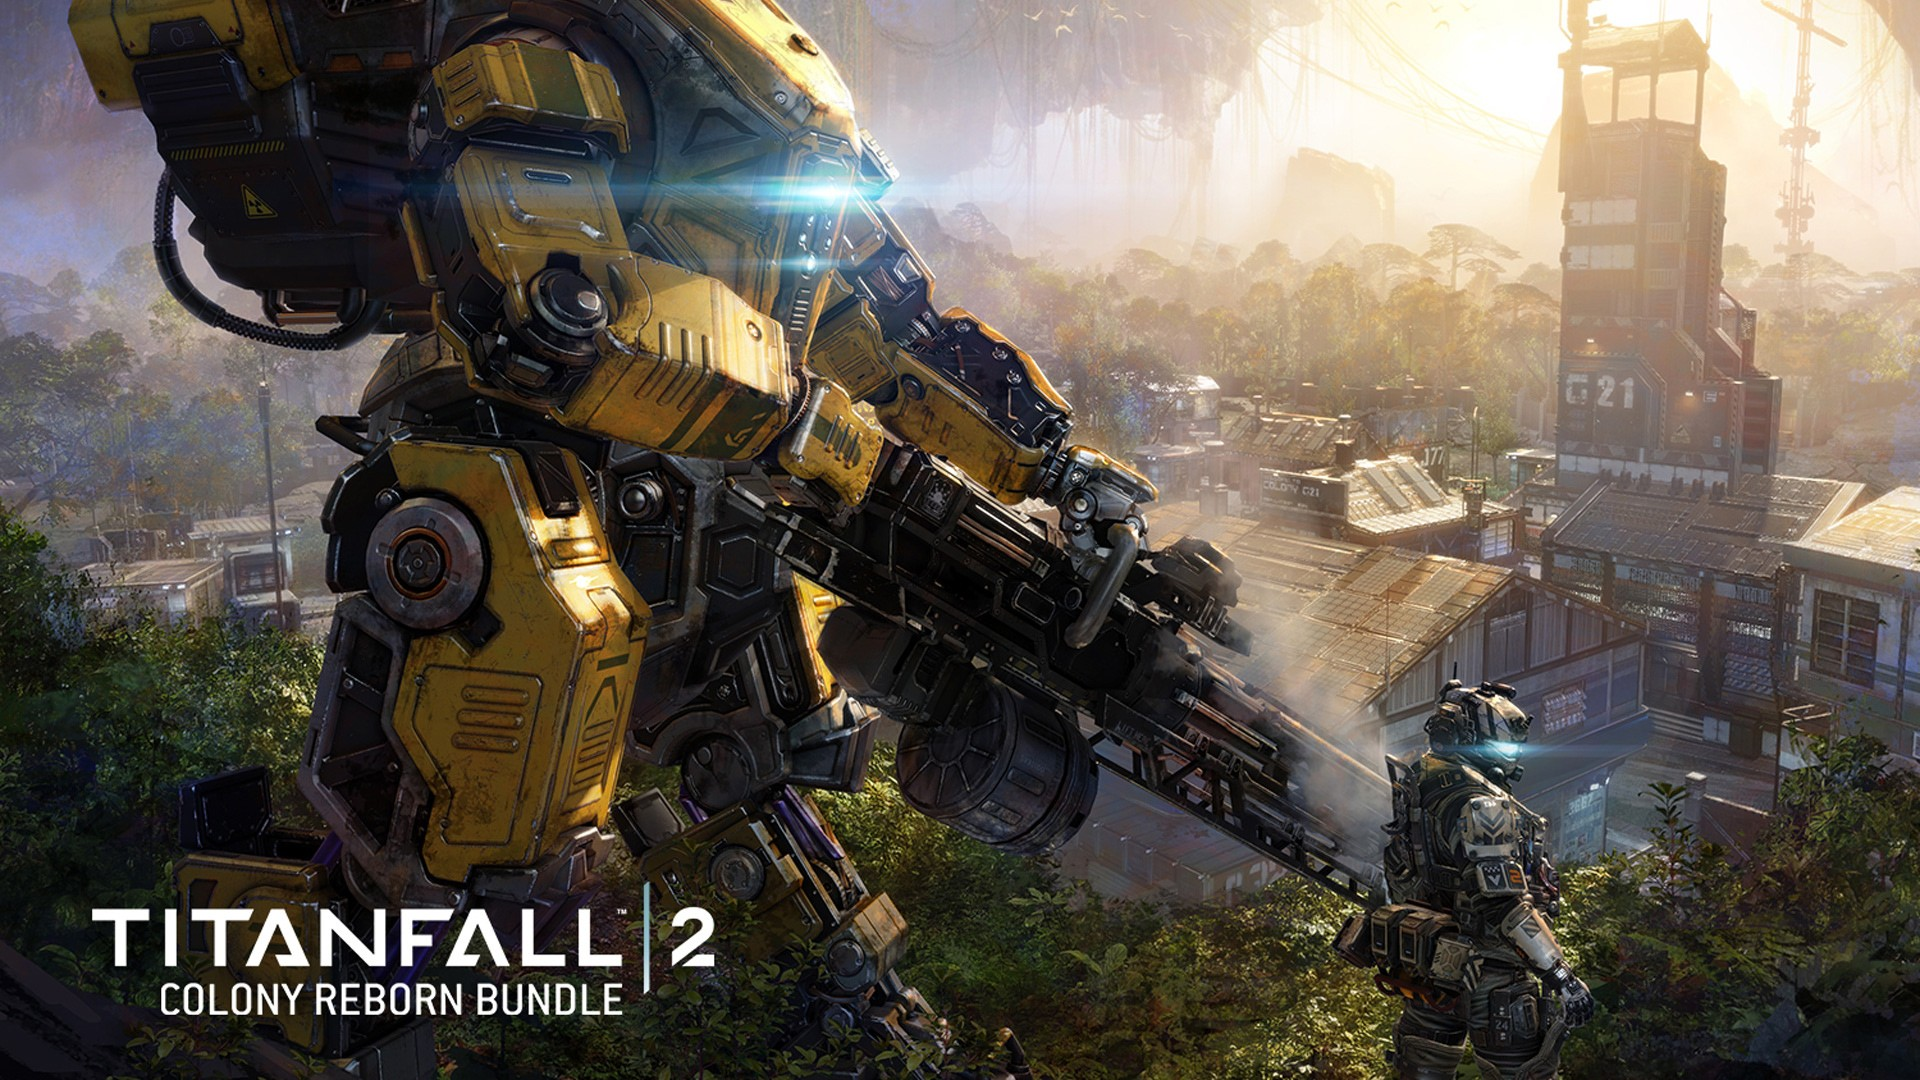 Hd Iphone Wallpapers Fall Titanfall 2 Colony Reborn Dlc Wallpapers Hd Wallpapers